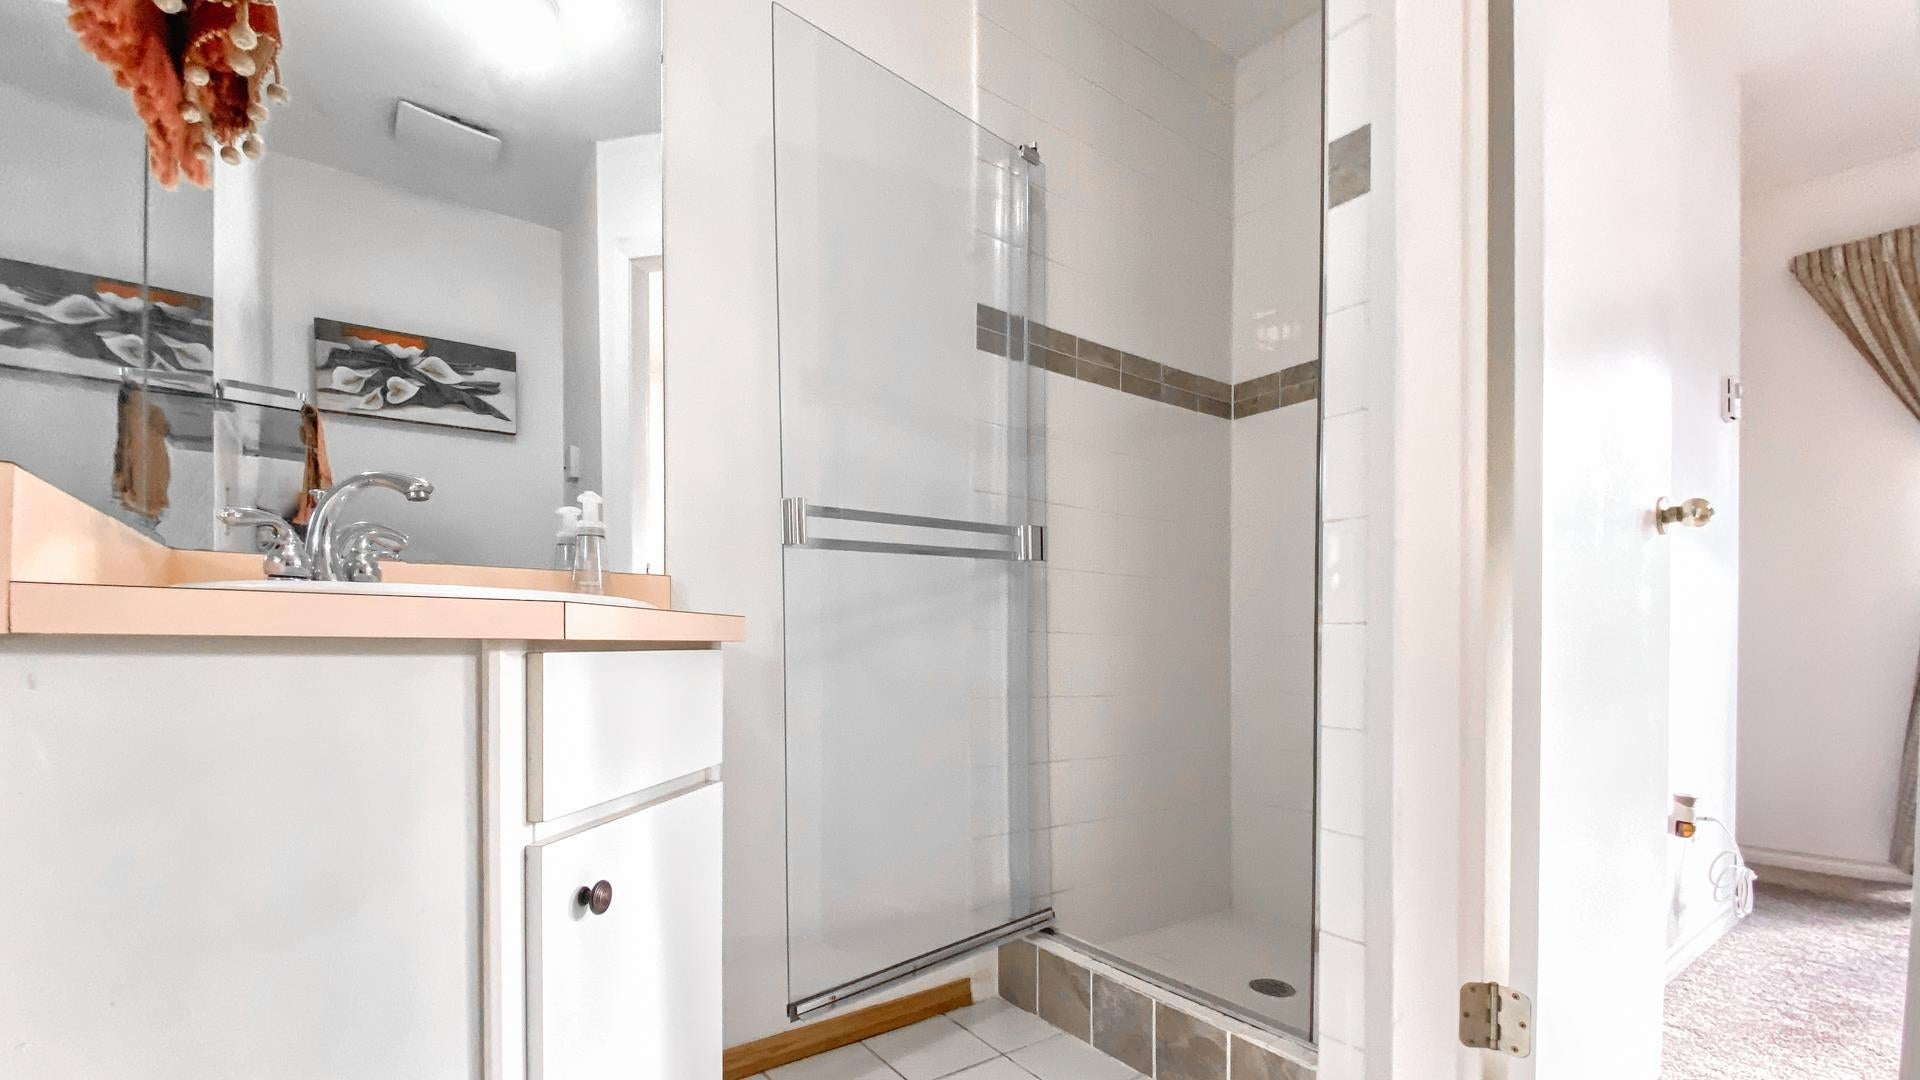 1 410 MAHON AVENUE - Lower Lonsdale Townhouse for sale, 2 Bedrooms (R2623610) - #12